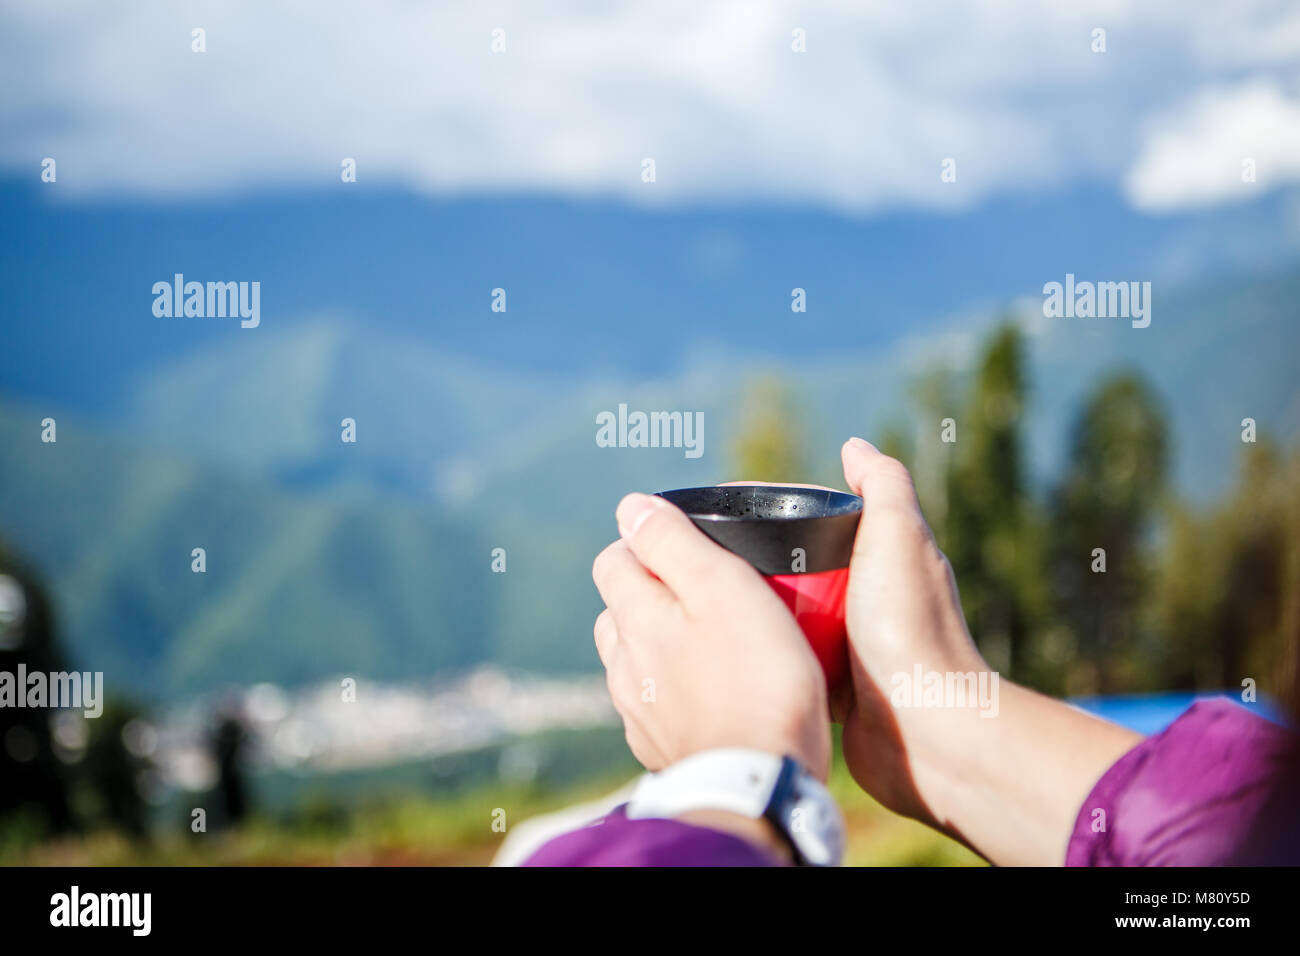 Photo of woman's hands with cup on blurred background of autumnal park - Stock Image